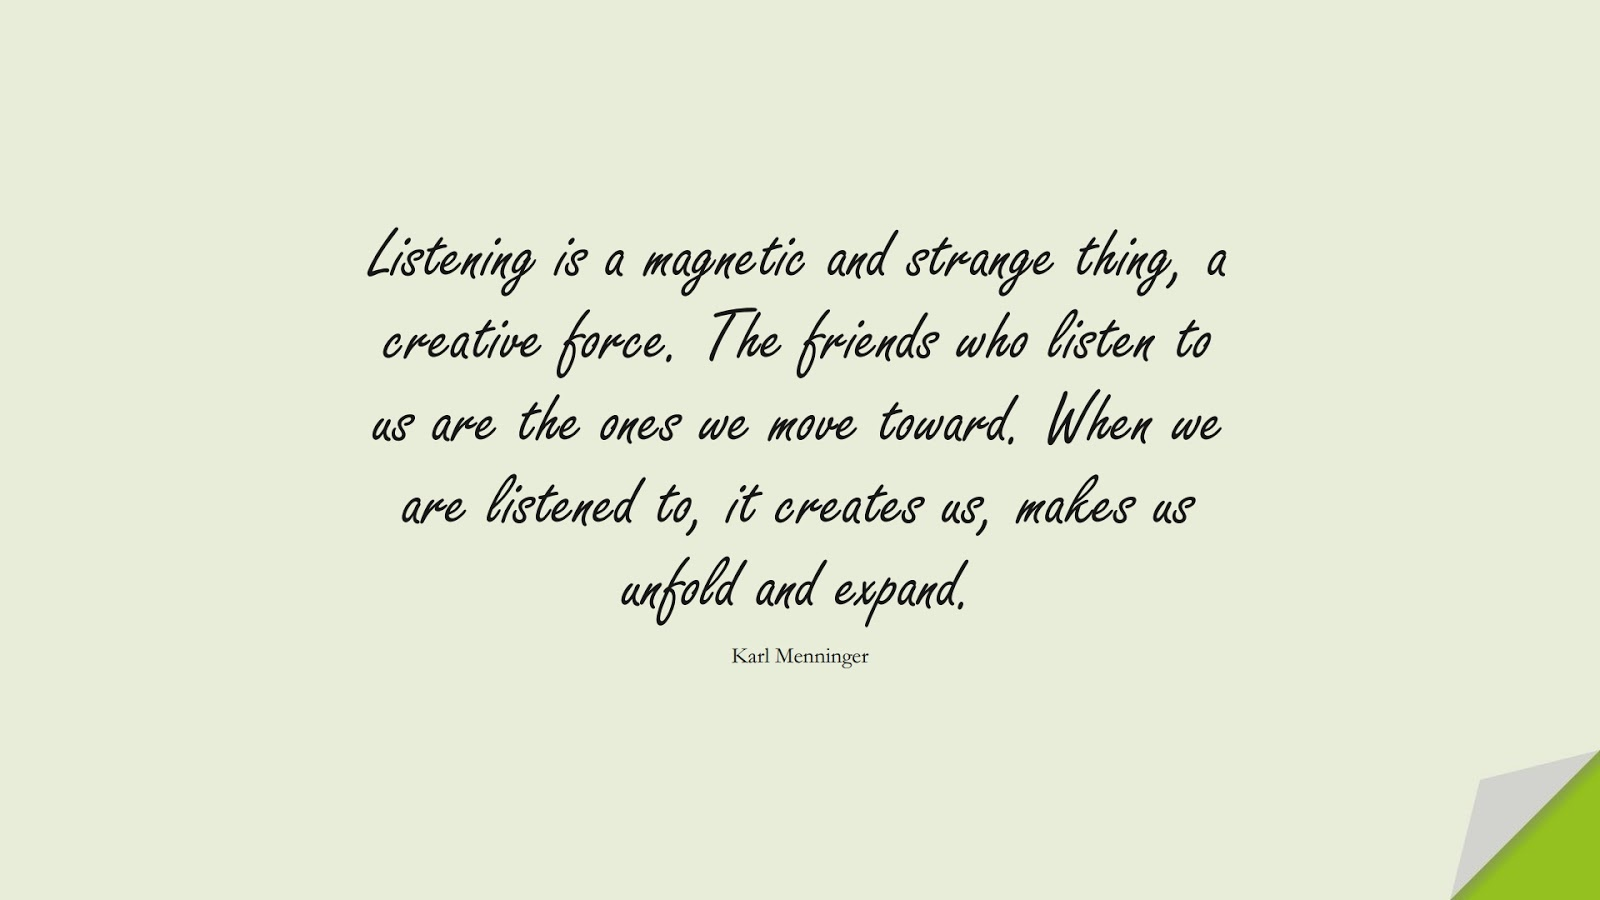 Listening is a magnetic and strange thing, a creative force. The friends who listen to us are the ones we move toward. When we are listened to, it creates us, makes us unfold and expand. (Karl Menninger);  #FriendshipQuotes